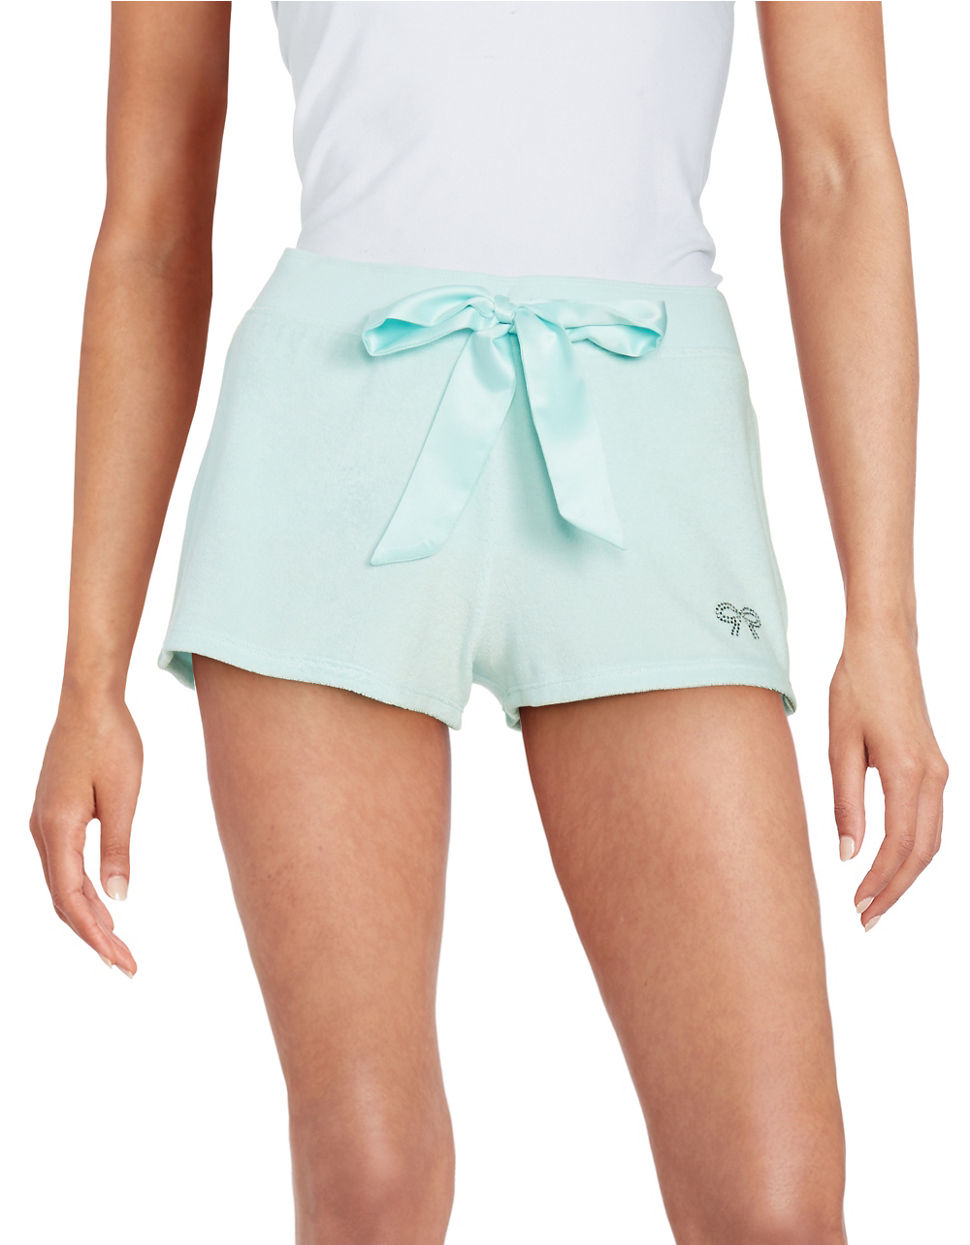 Betsey johnson Baby Terry Cloth Shorts in Blue | Lyst